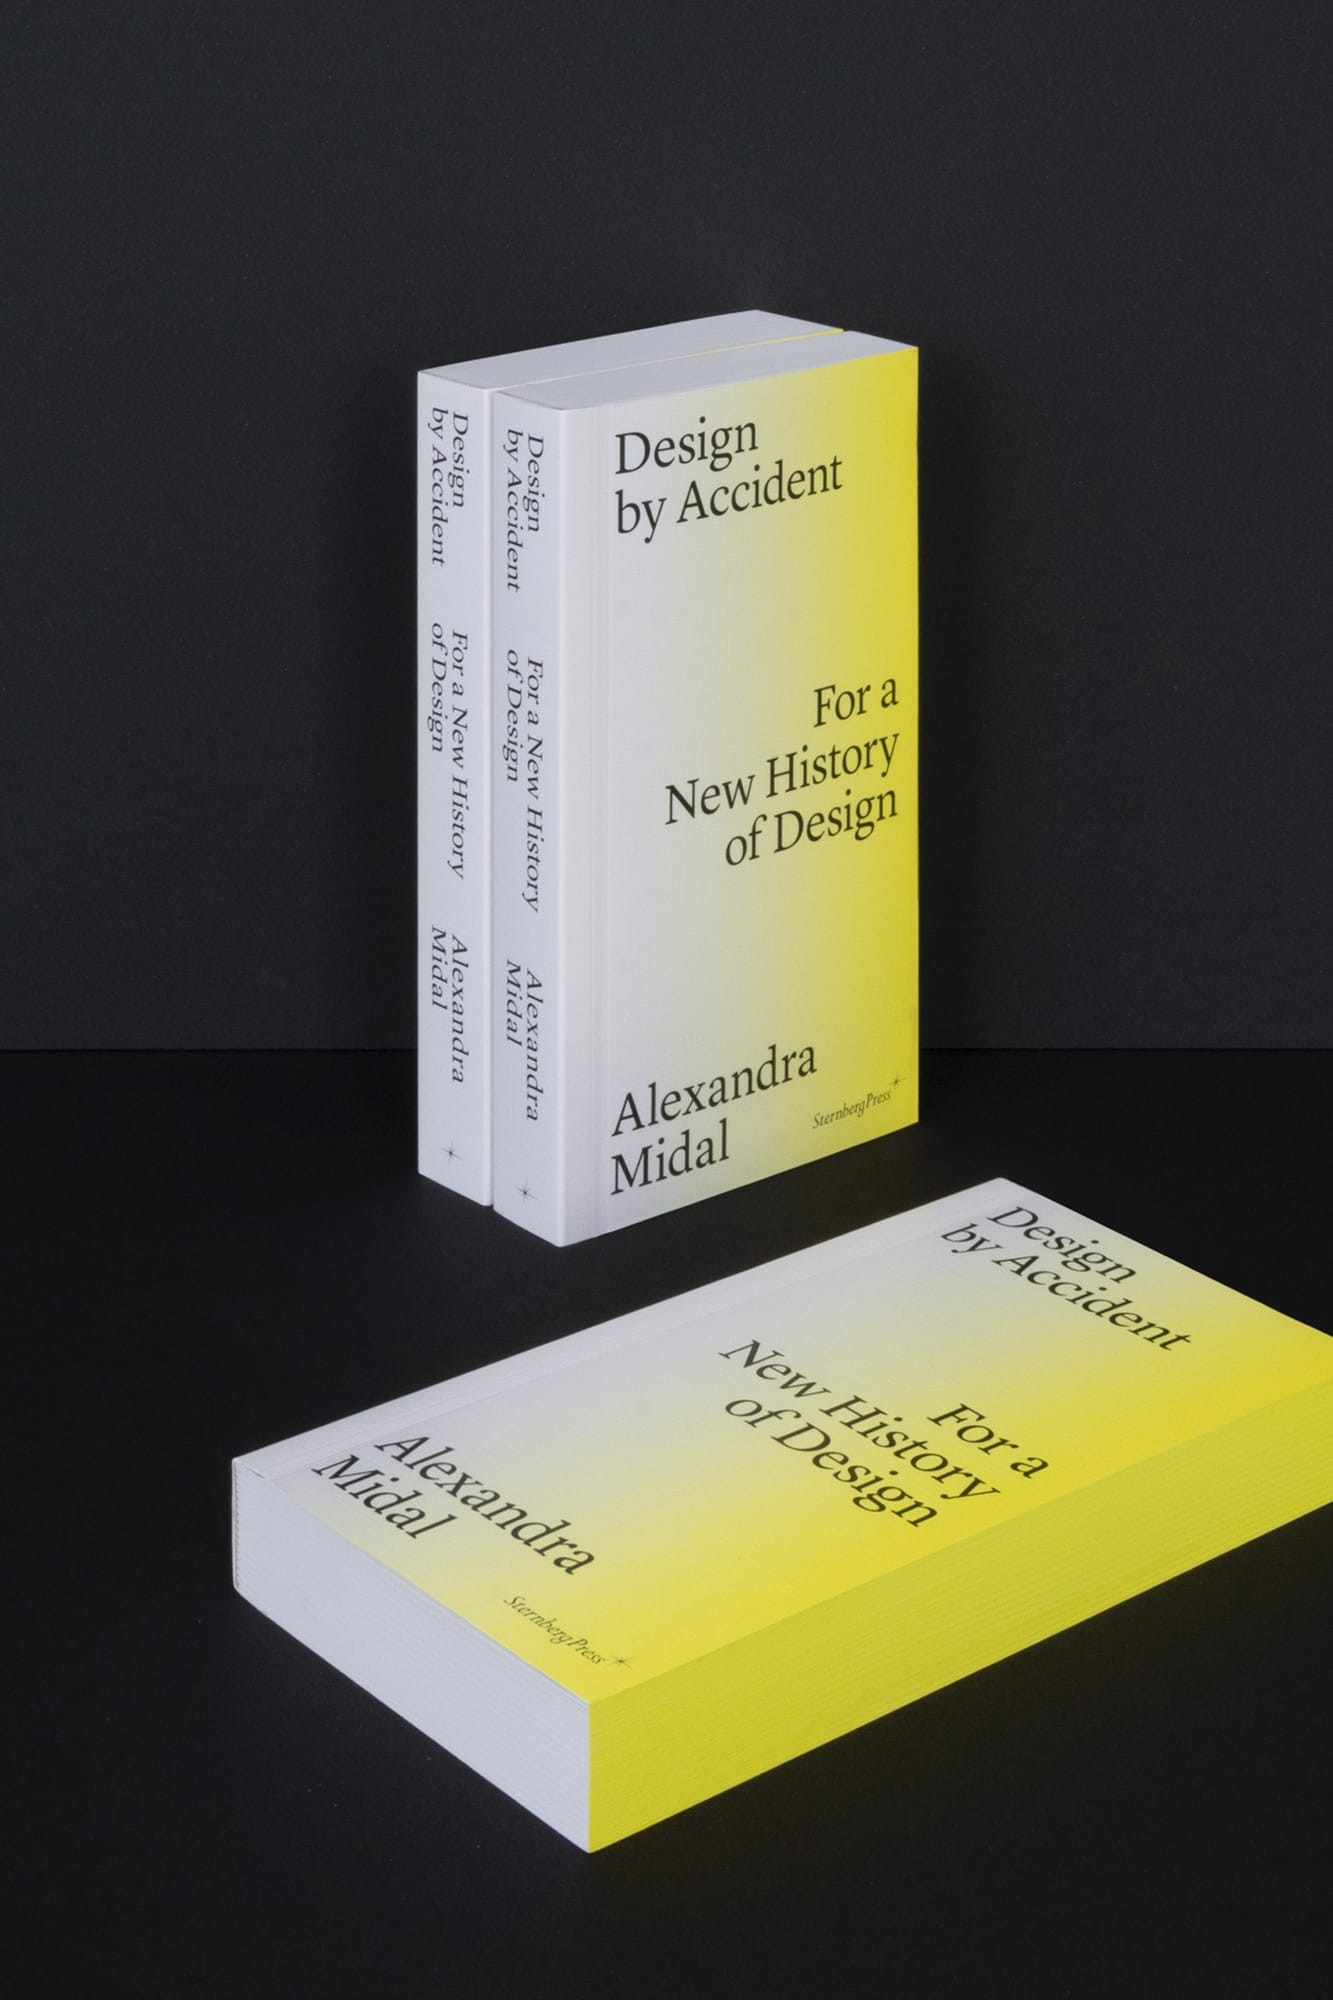 Design by Accident For a New History of Design Alexandra Midal Sternberg Press